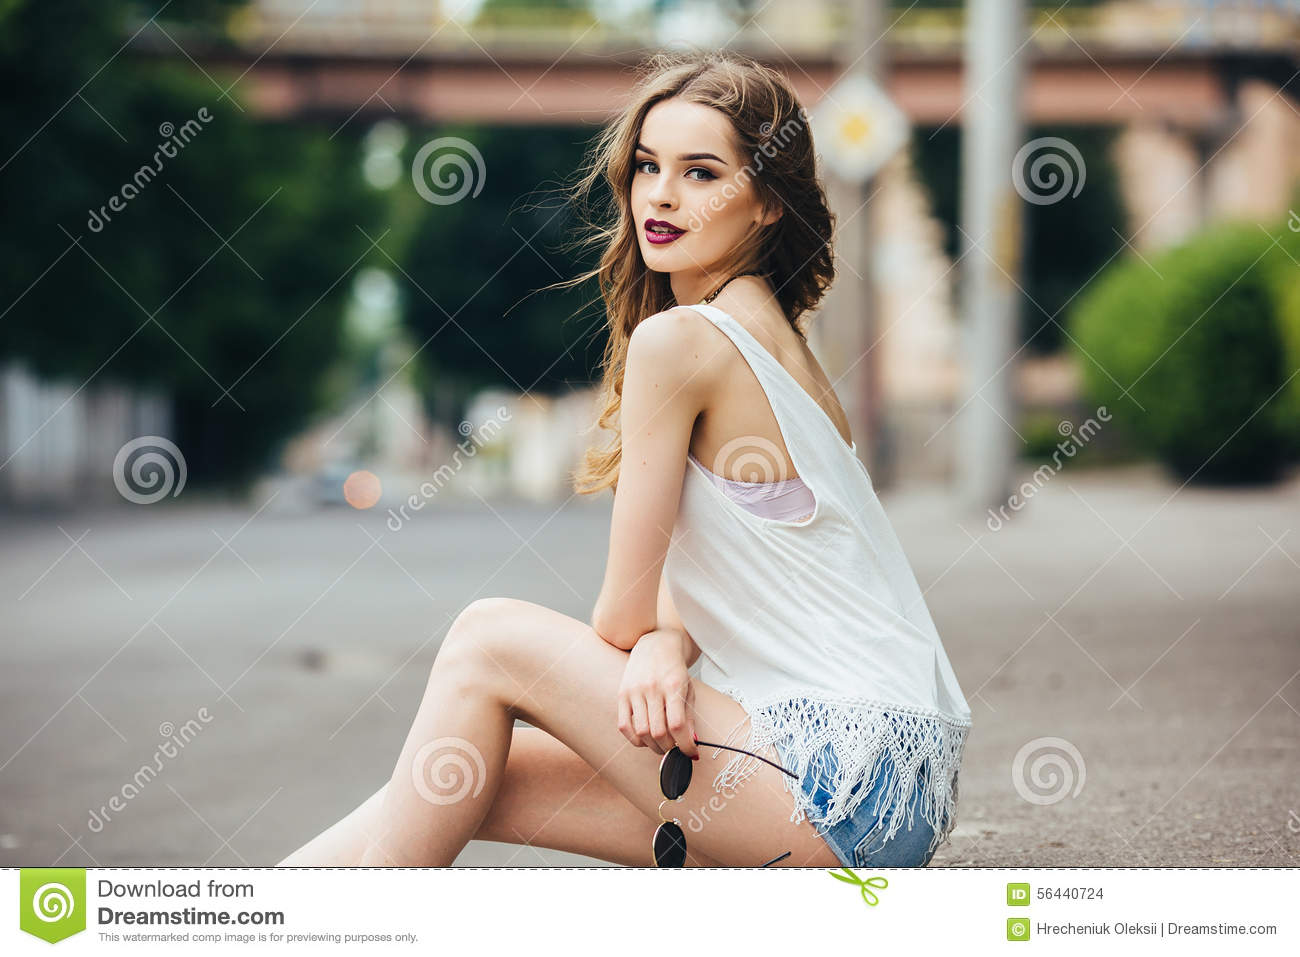 Pretty Girl Sitting In A City Street Stock Image ...